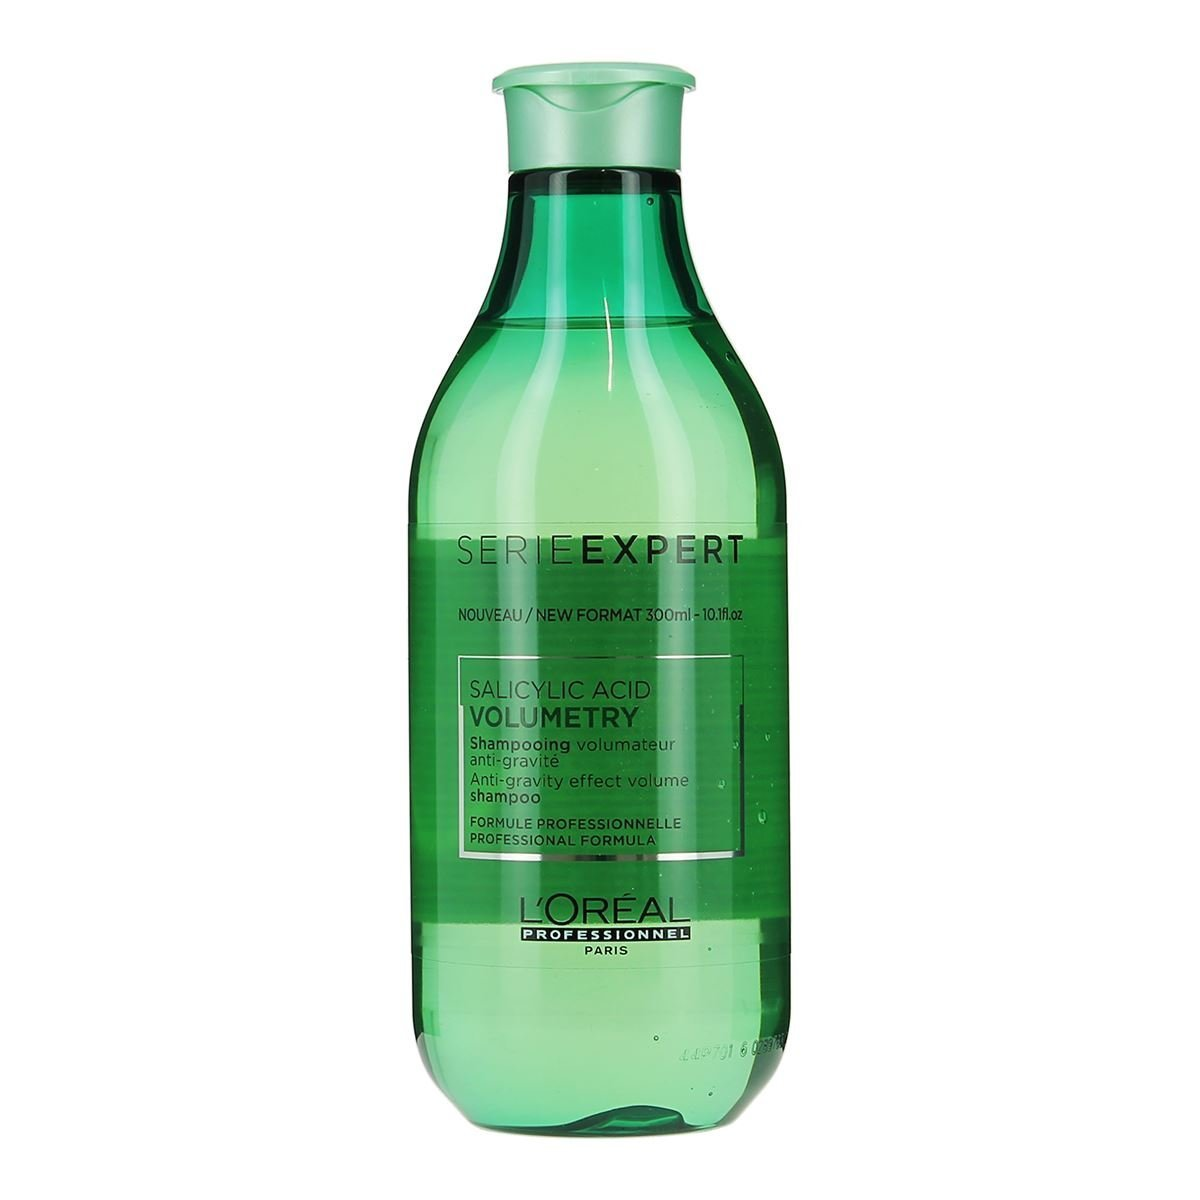 L'Oreal Professional Serie Expert intra-Cylane Volumetry Shampoo, 300 ml L' Oréal Professionnel 2525515